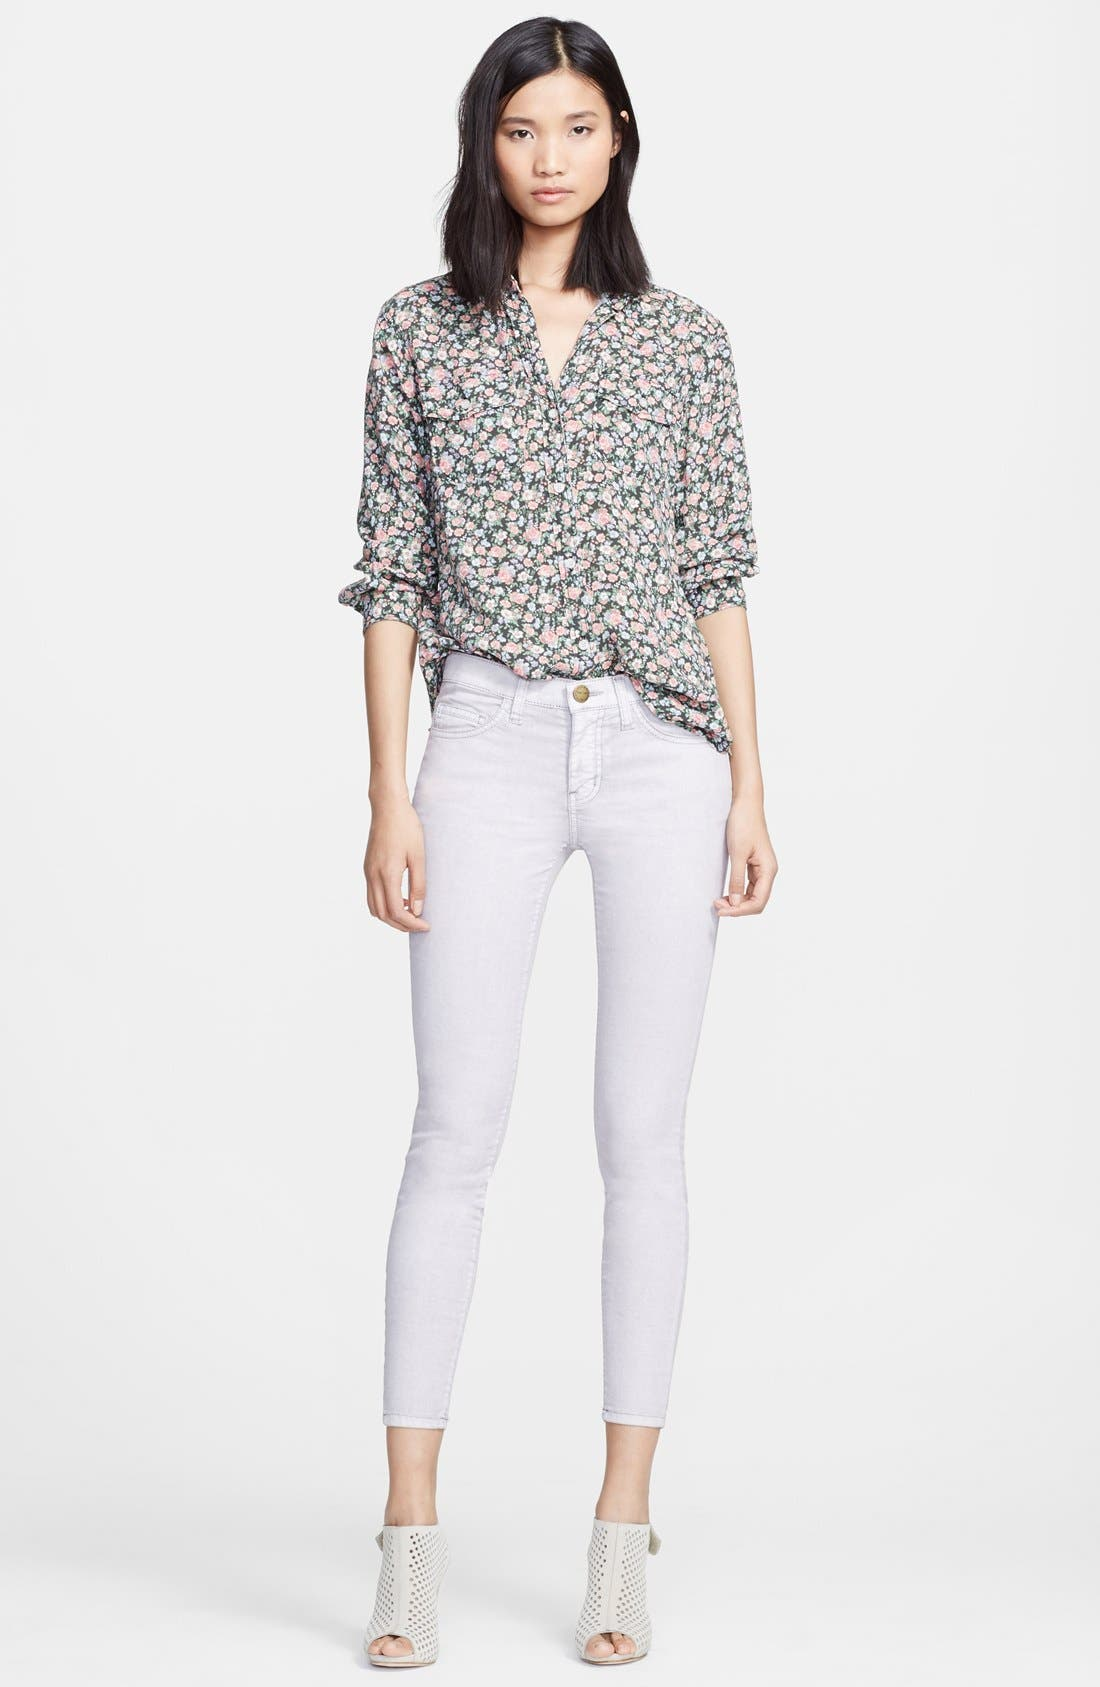 Alternate Image 1 Selected - Current/Elliott 'The Perfect Shirt' Floral Print Shirt